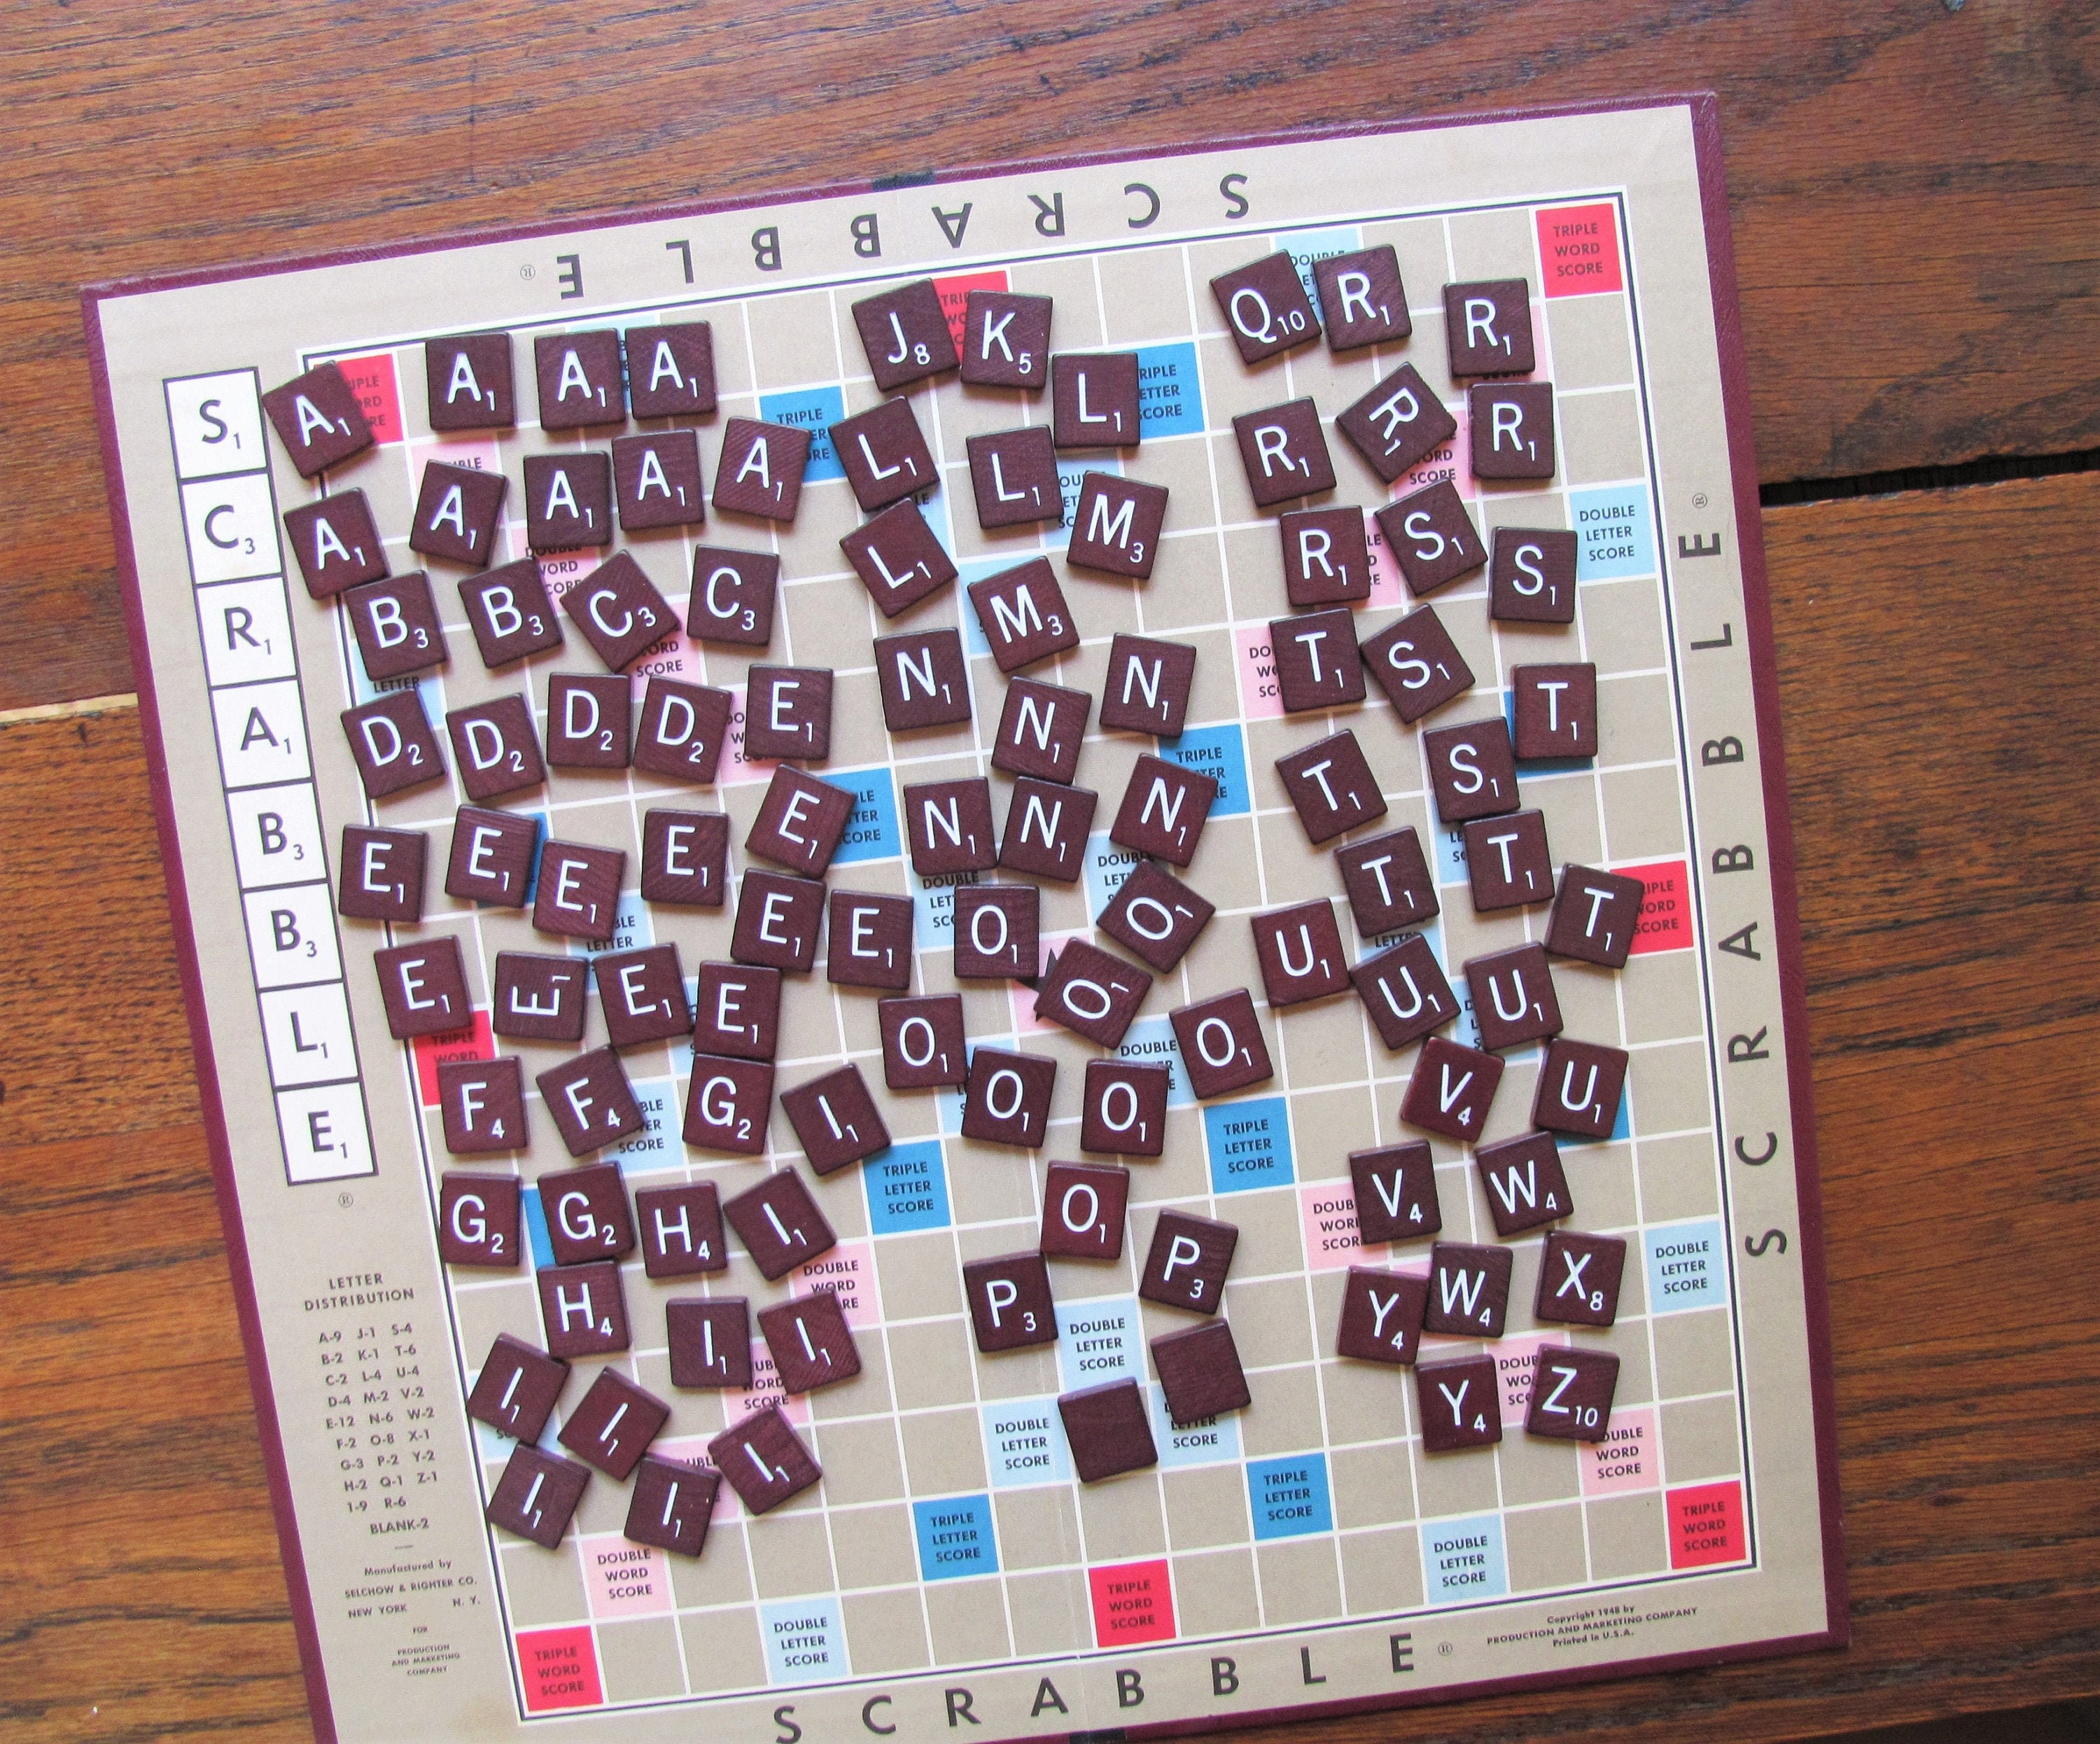 Scrabble Tiles Replacement Letter G Maroon Burgundy Wooden Craft Game Part Piece